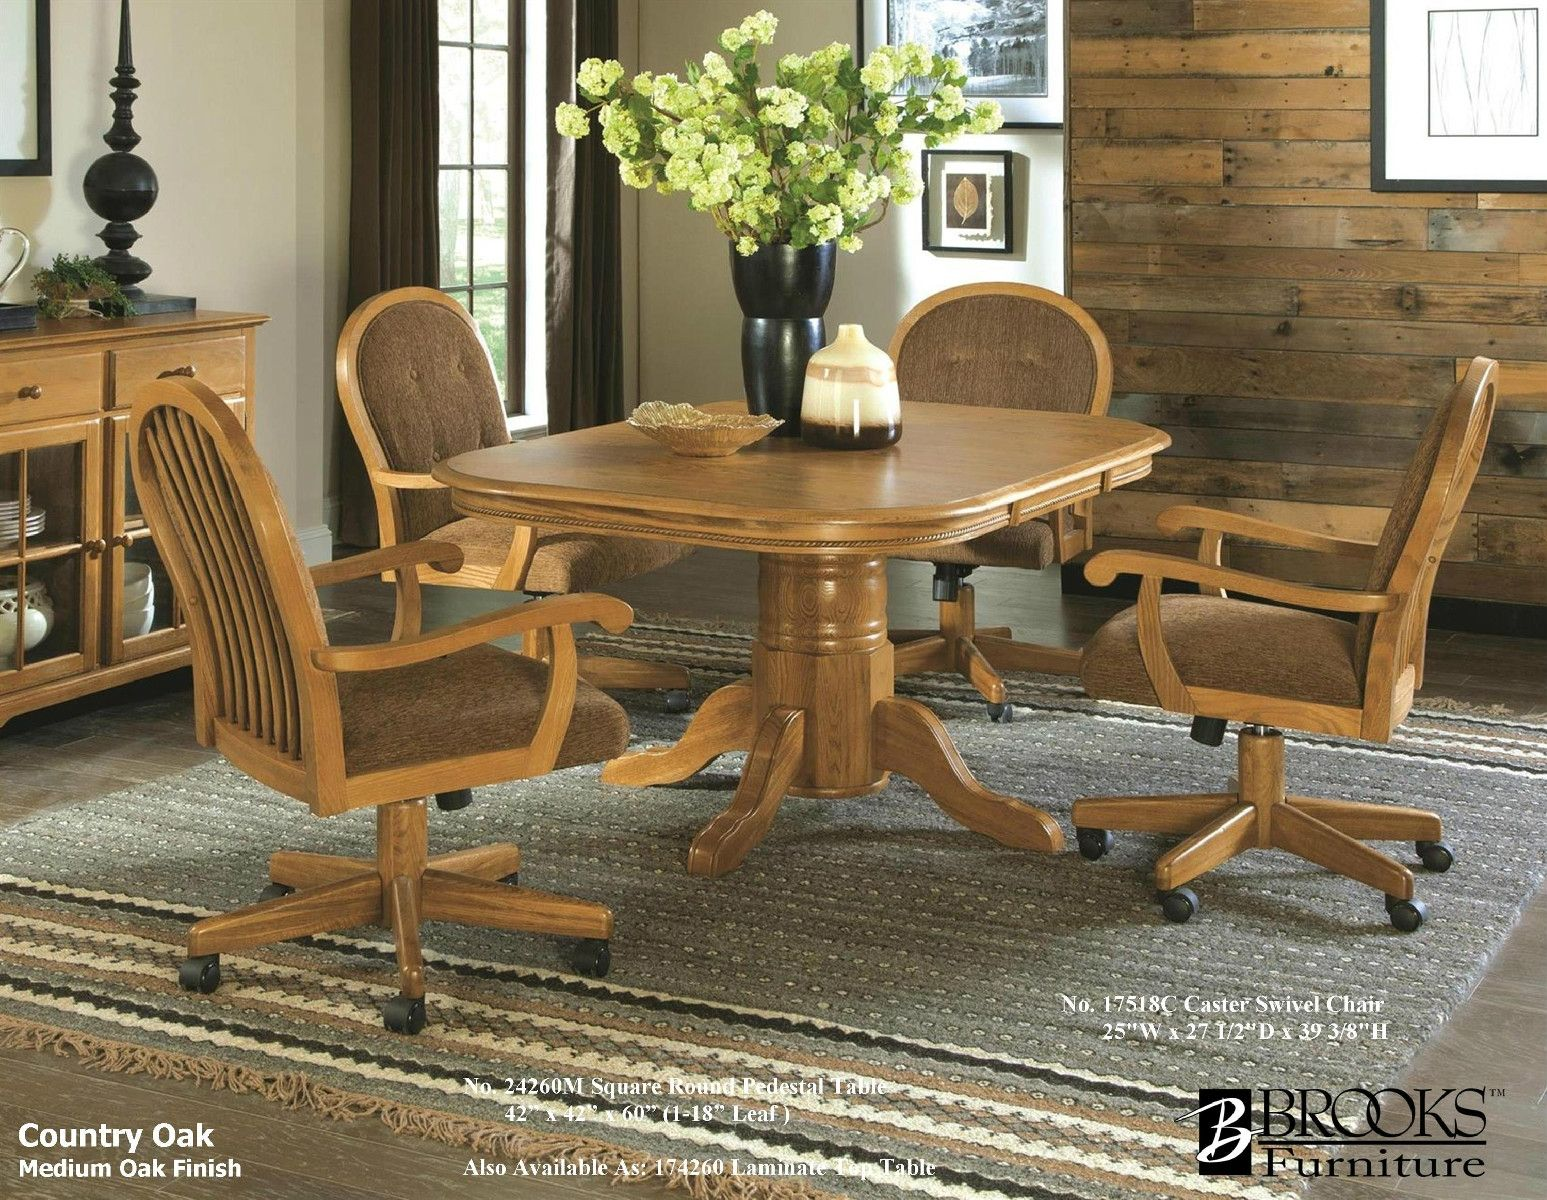 Brooks Table And 4 Caster Chairs 179900 Boyd Furniture Dining Room Chairs Modern Dining Room Sets Modern Dining Chairs